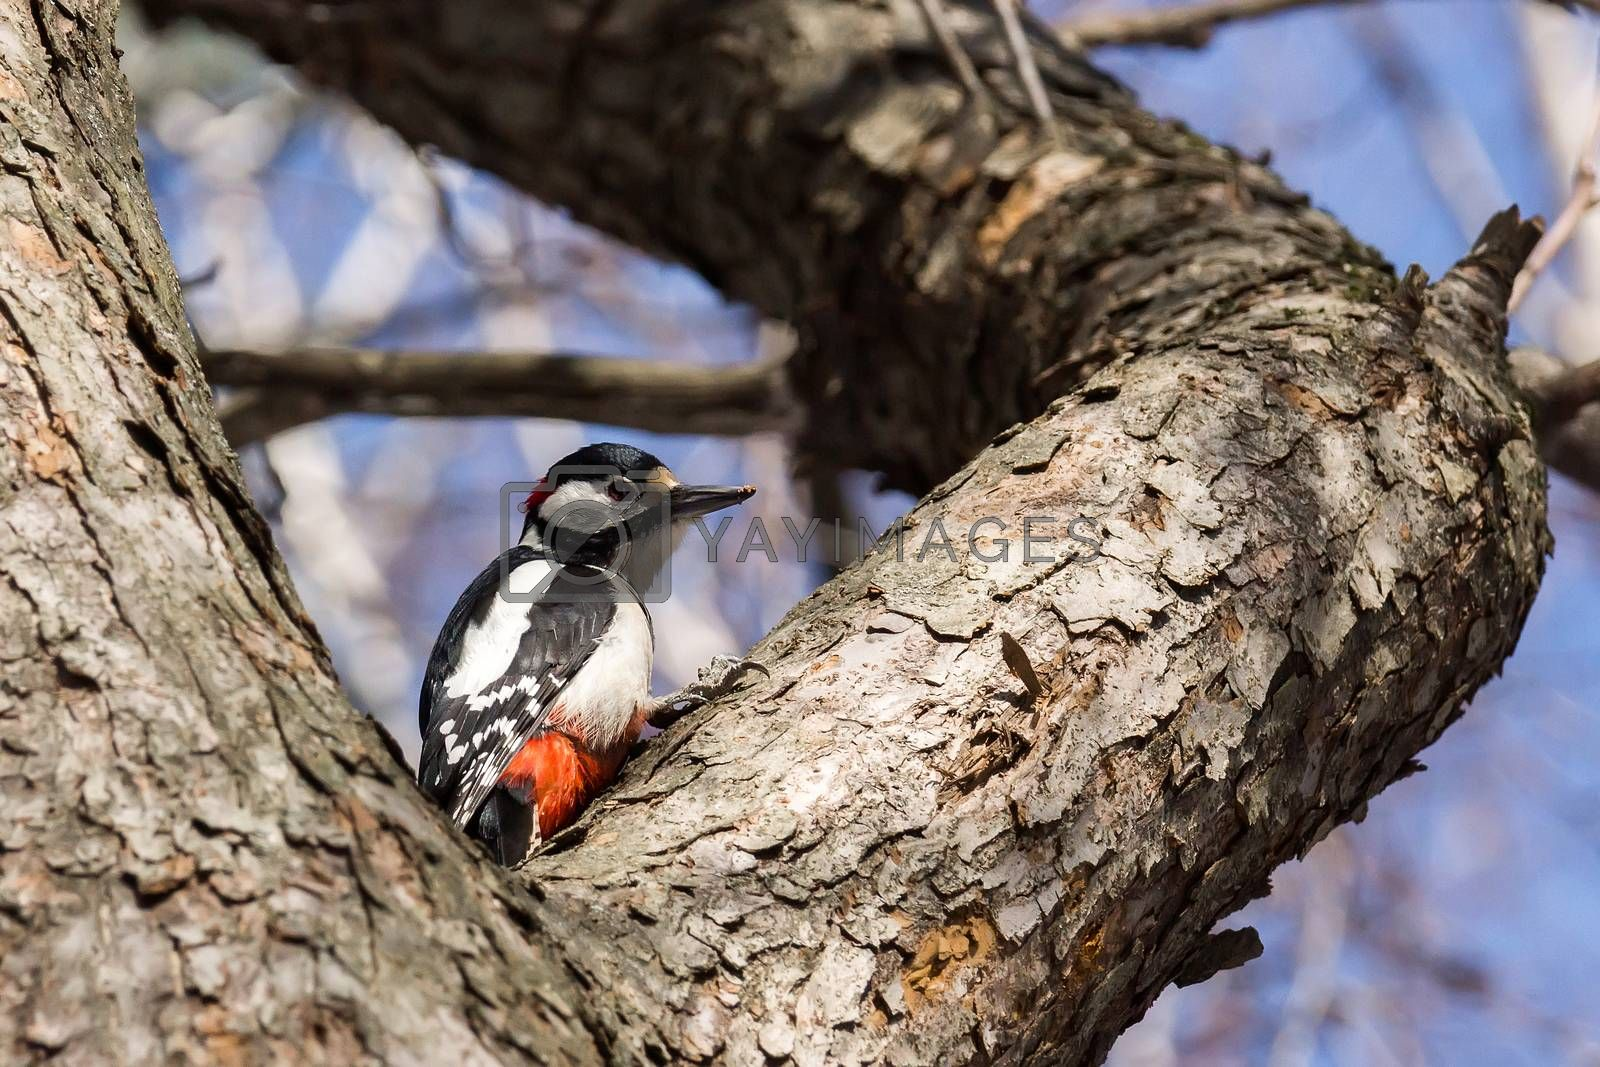 The photo depicts a woodpecker on a tree